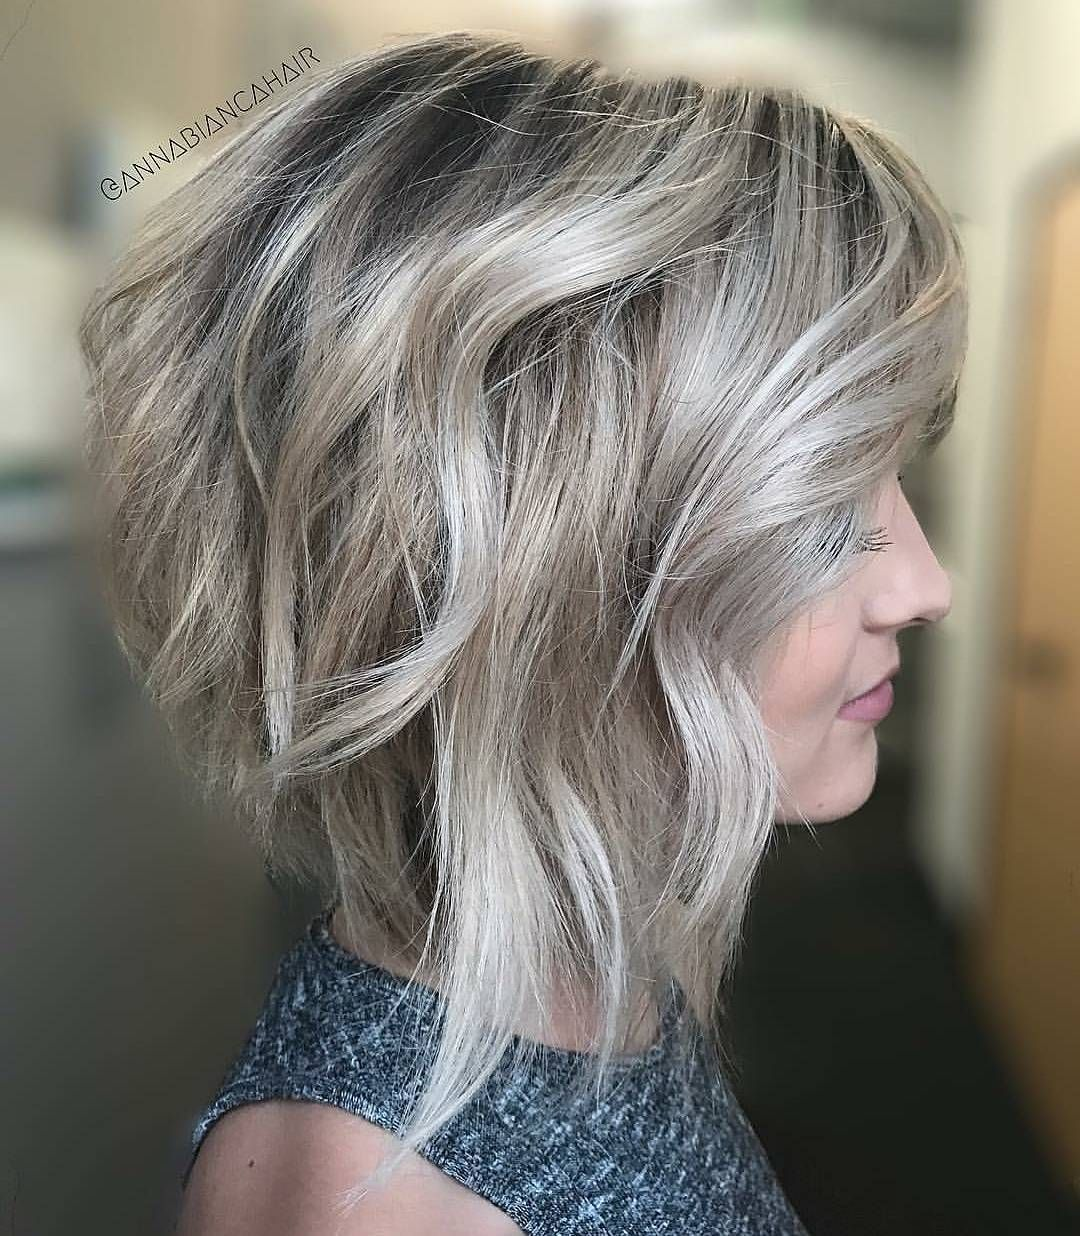 10 Messy Hairstyles For Short Hair Quick Chic Women Short Haircut 2021 Messy Hairstyles Short Messy Haircuts Medium Bob Haircut